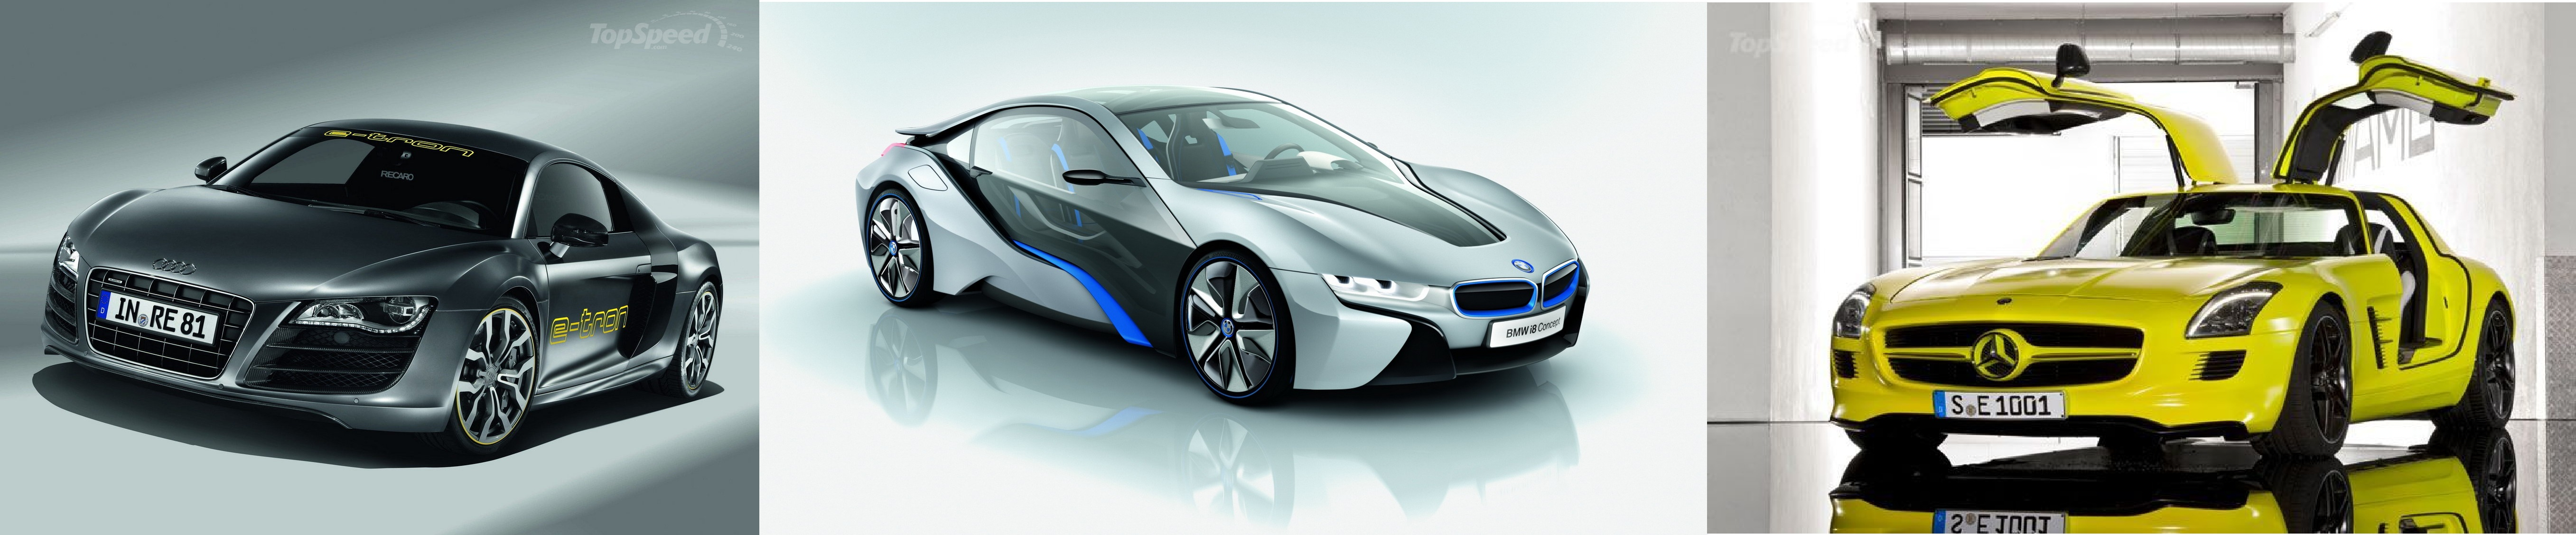 2011 BMW I8 Concept Review - Top Speed